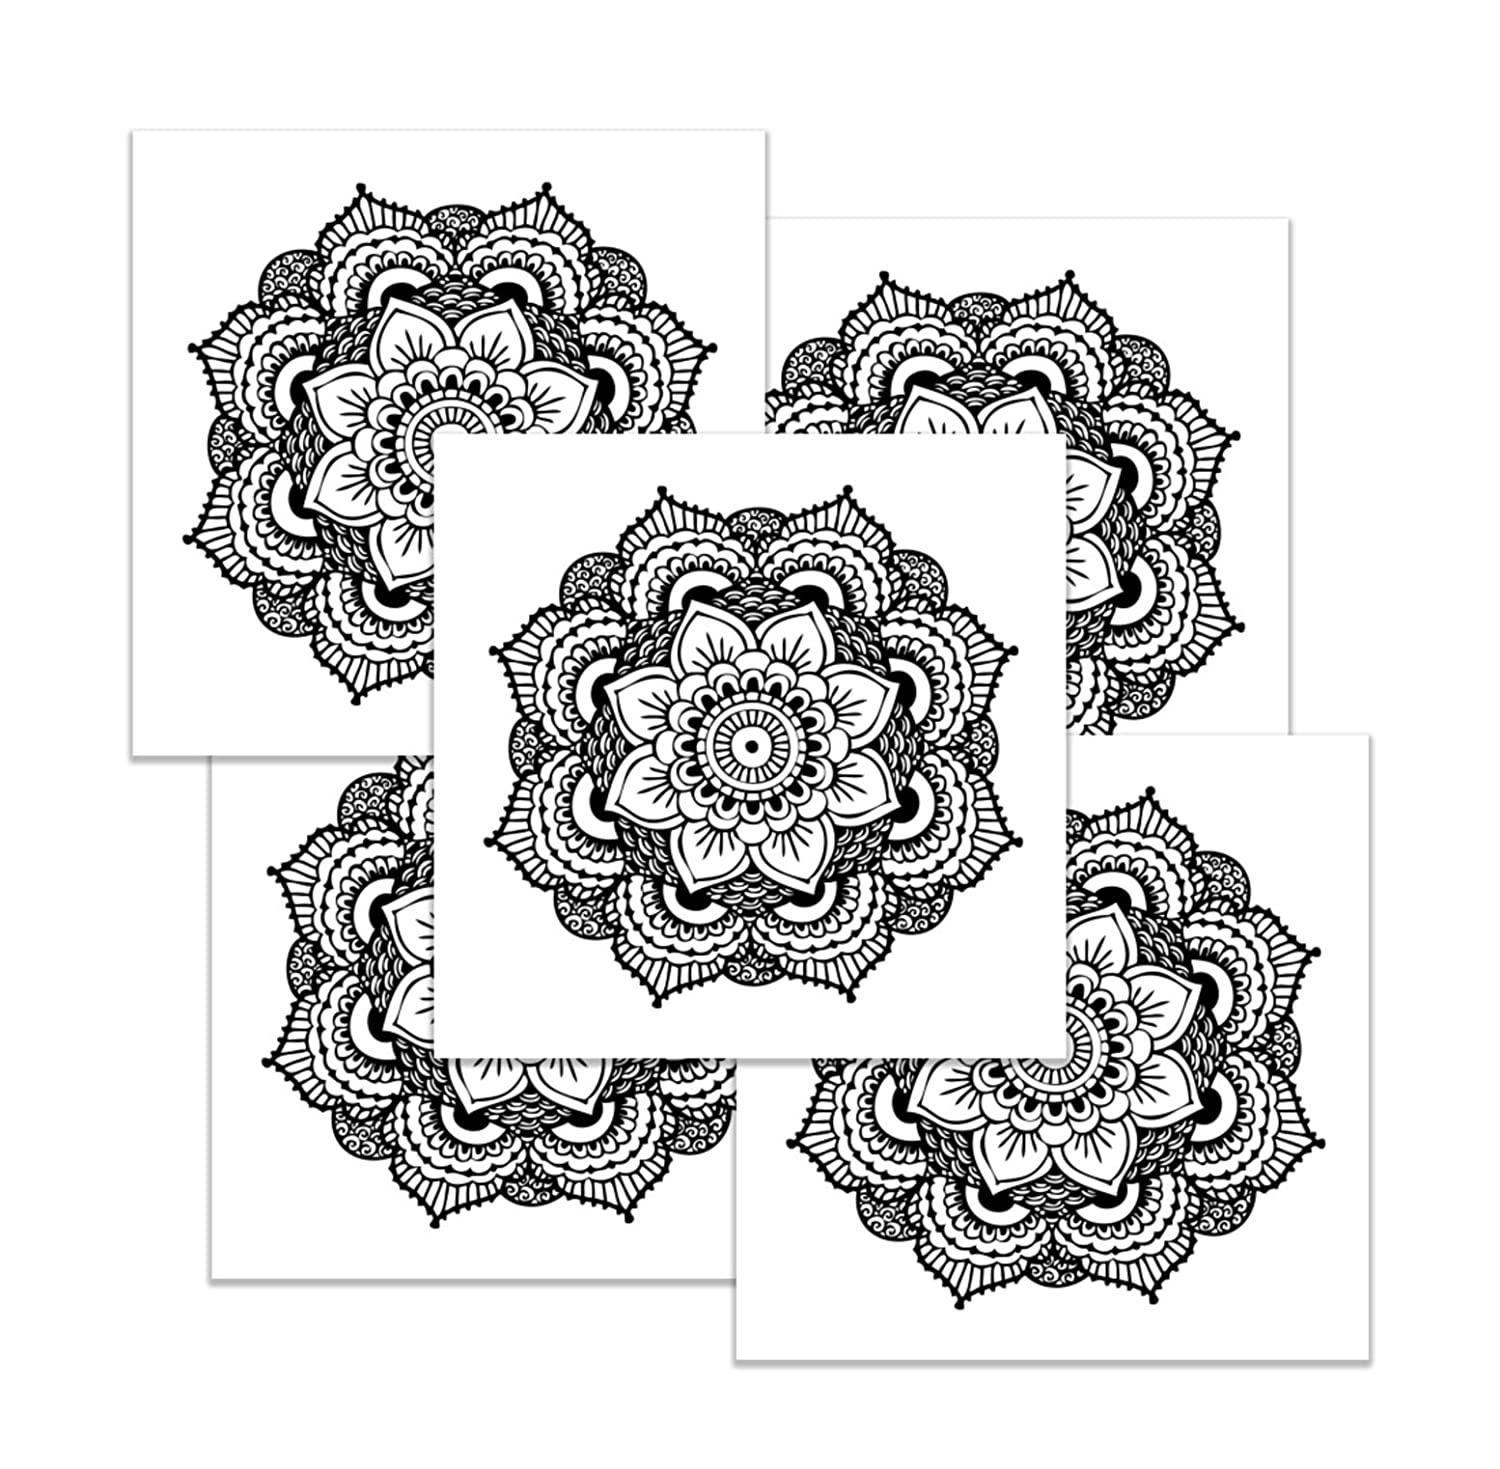 Mandala Temporary Tattoo Set - Realistic & Motivational Yoga Accessory and Gift - Made in the USA